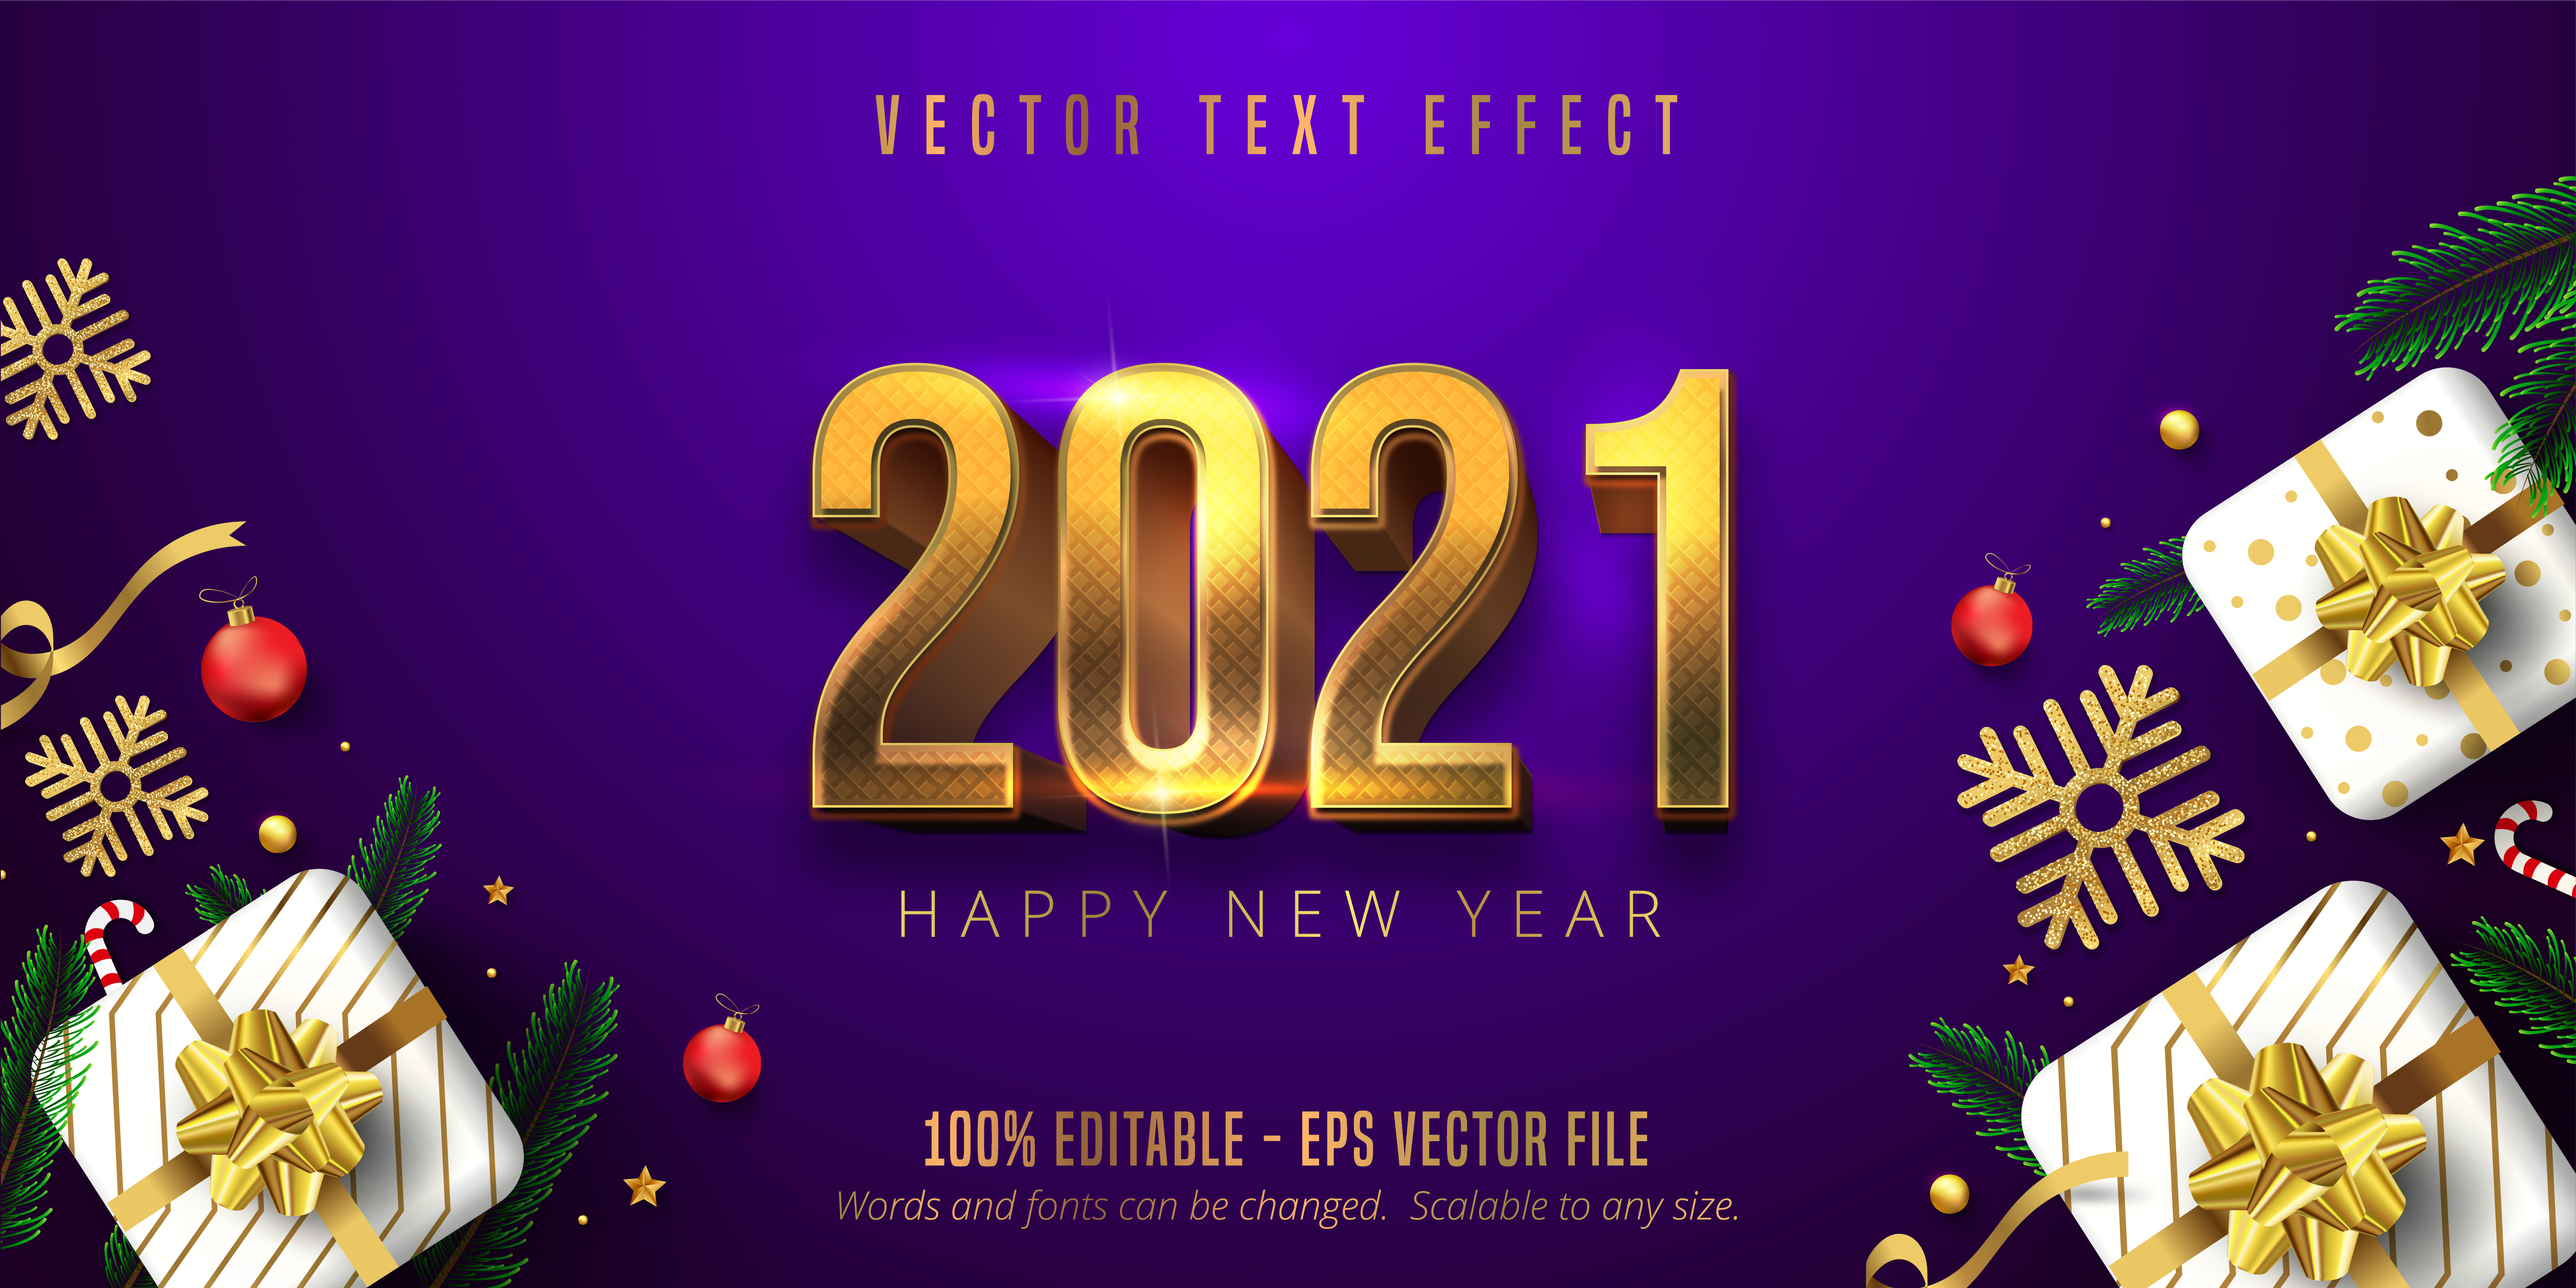 2021 Happy New Year Font Effect - Download Free Vectors ...